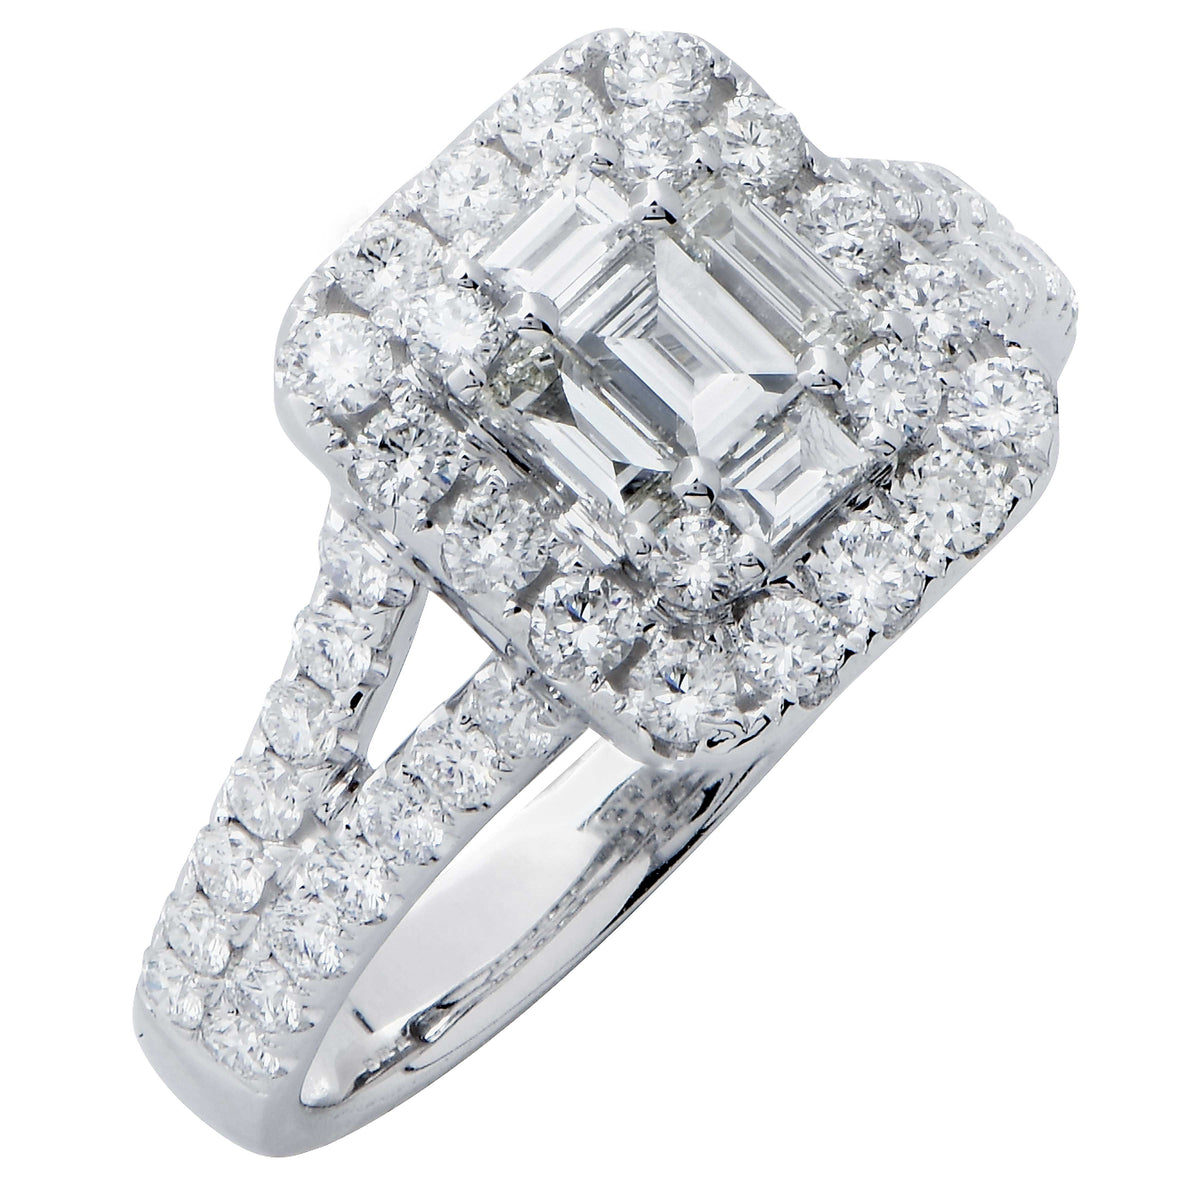 Sell my engagement ring Miami